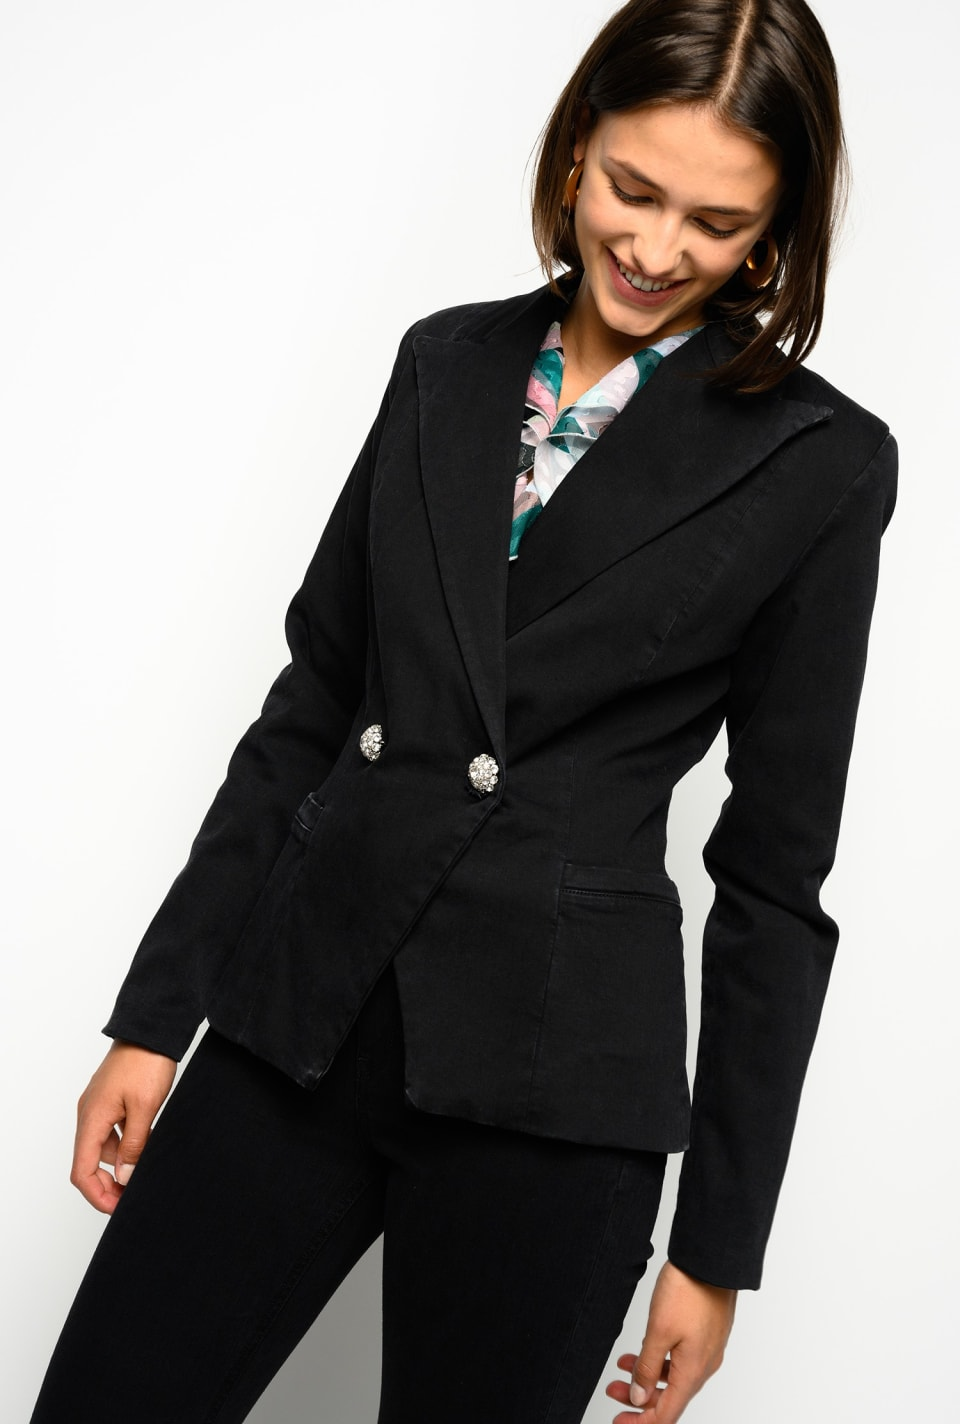 Blazer in black stretch denim - Pinko